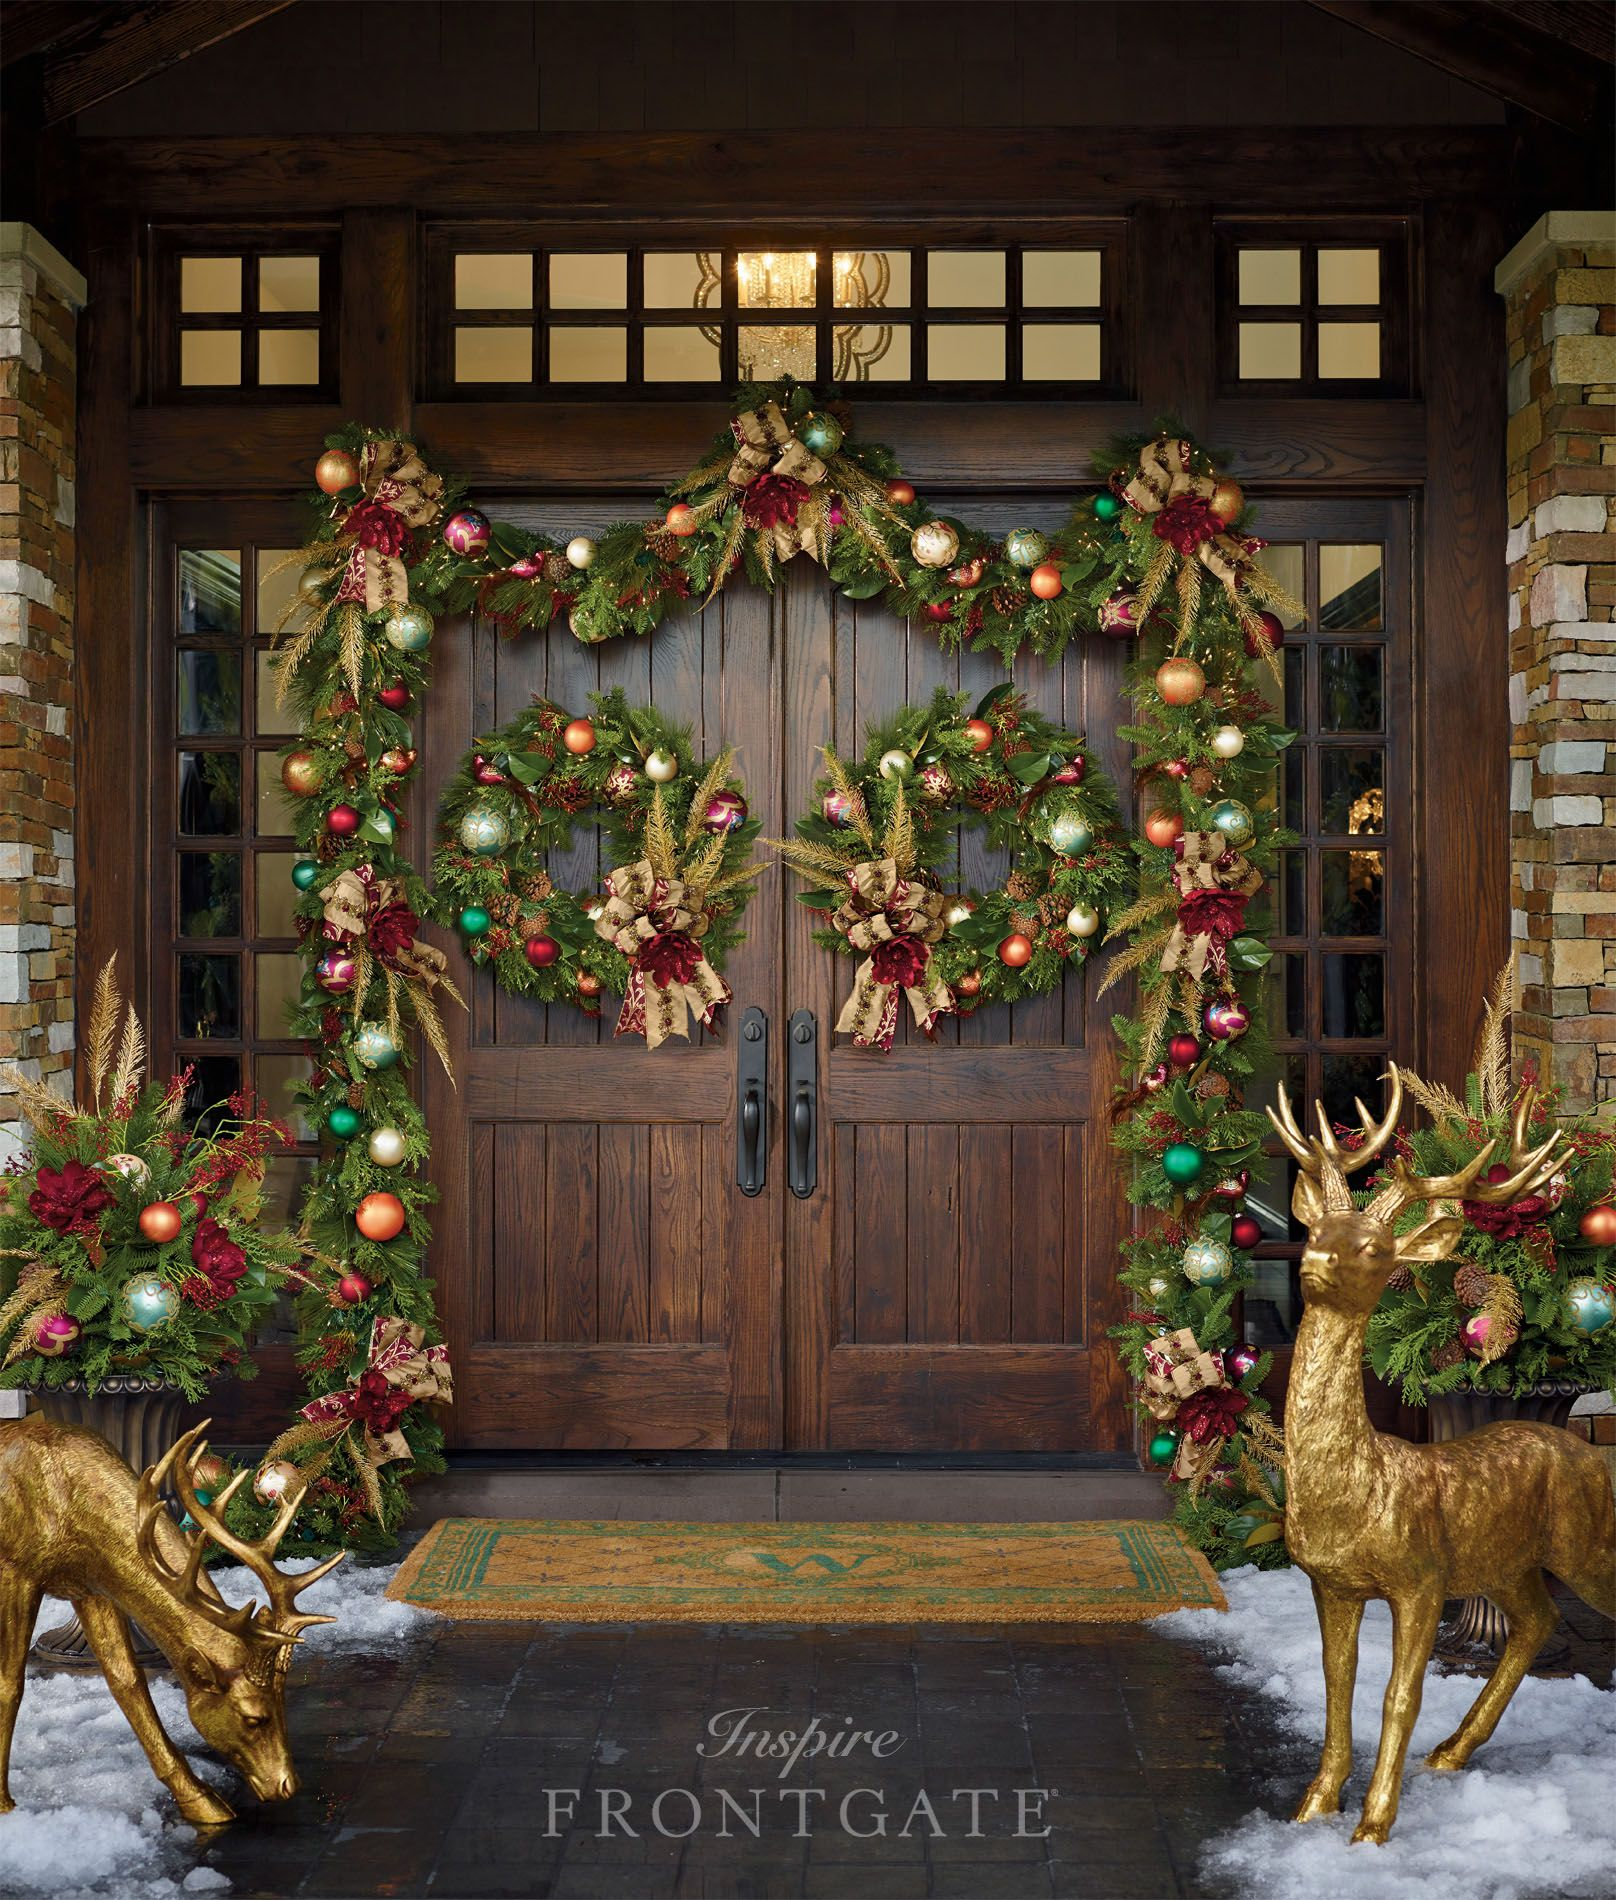 This year I will greet them at the door with a magical glowing